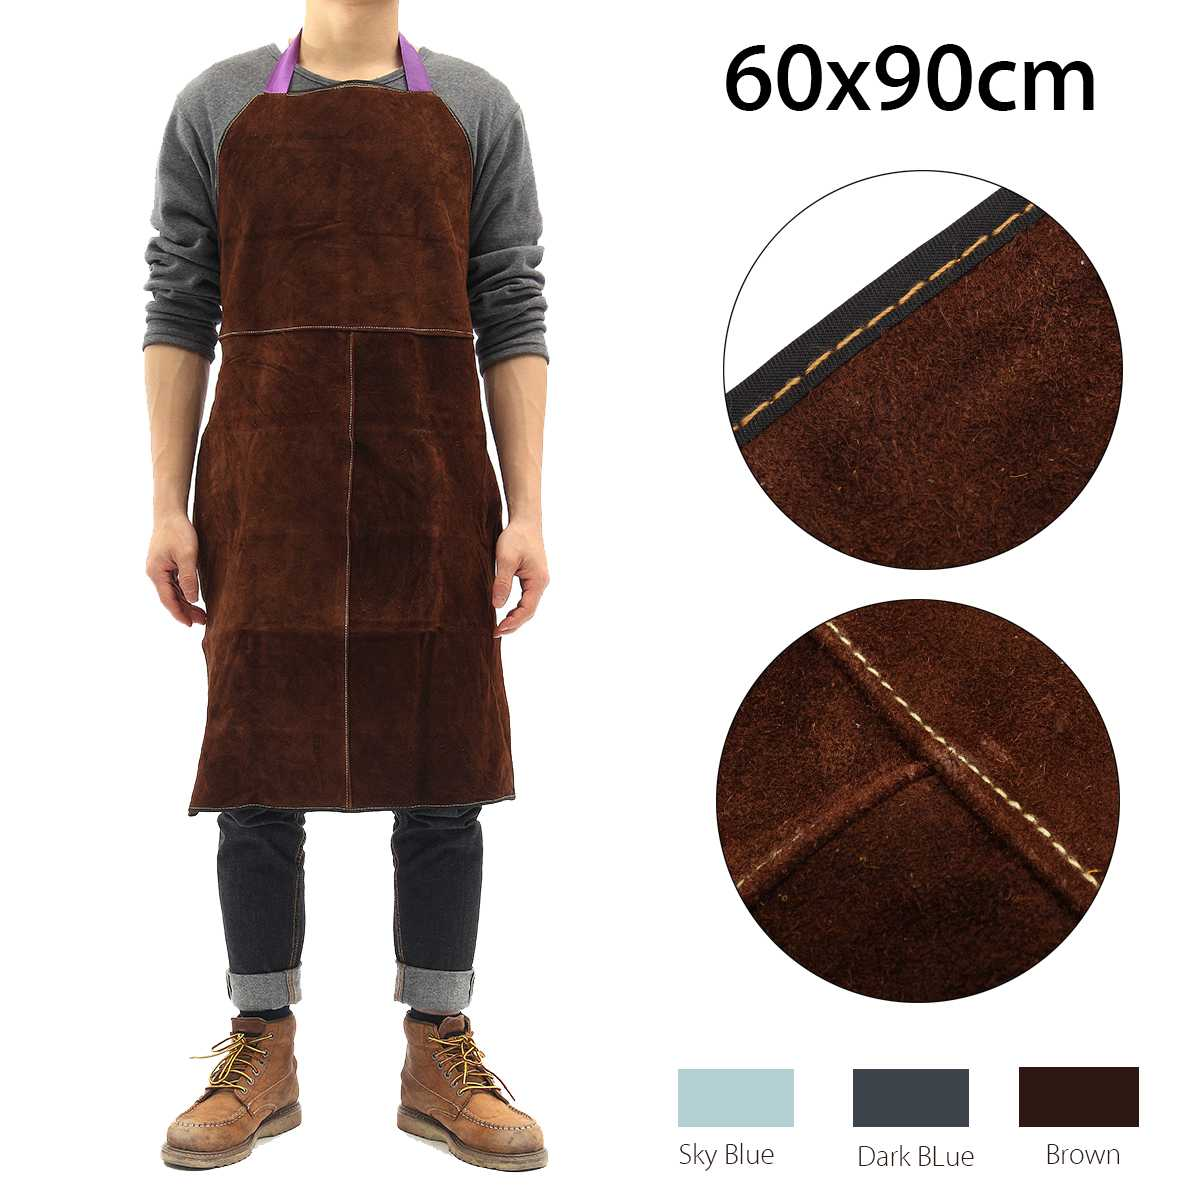 Safurance For Welders Apron Heat Resistant Welding Equipment Heat Insulation Protection Cow Leather Apron Workplace Safety